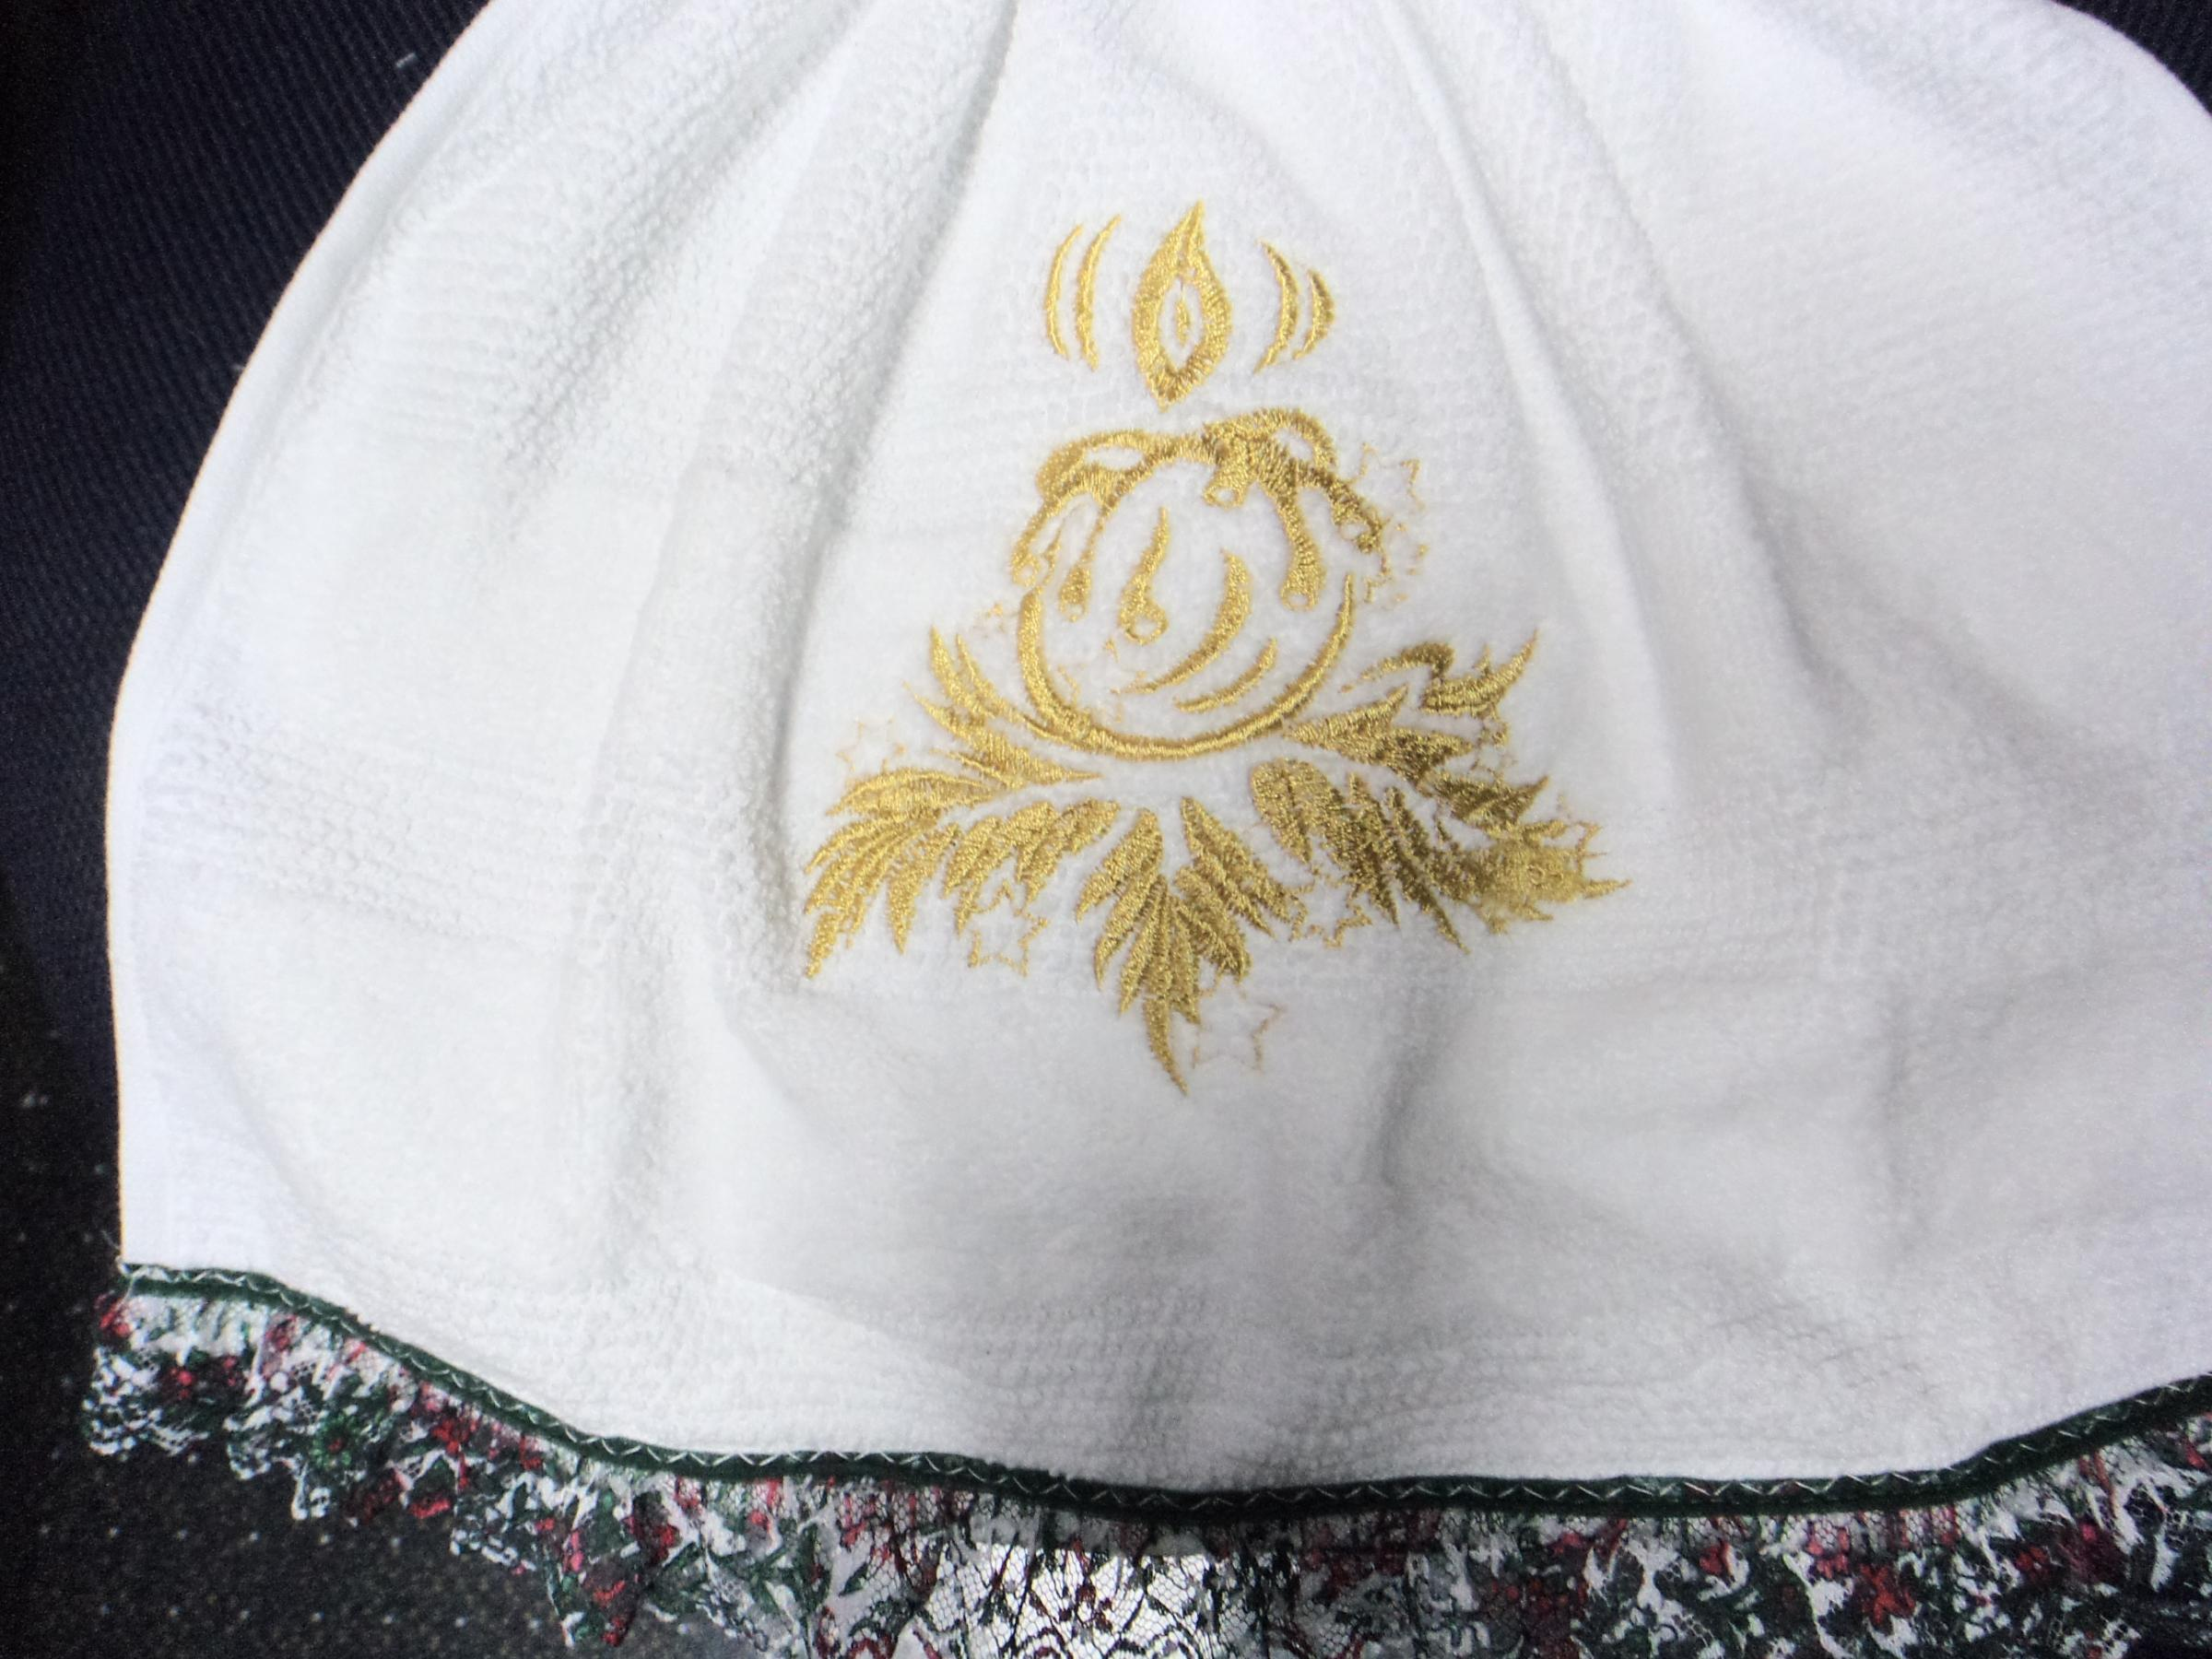 Fragment of embroidered skirt with Christmas candle design